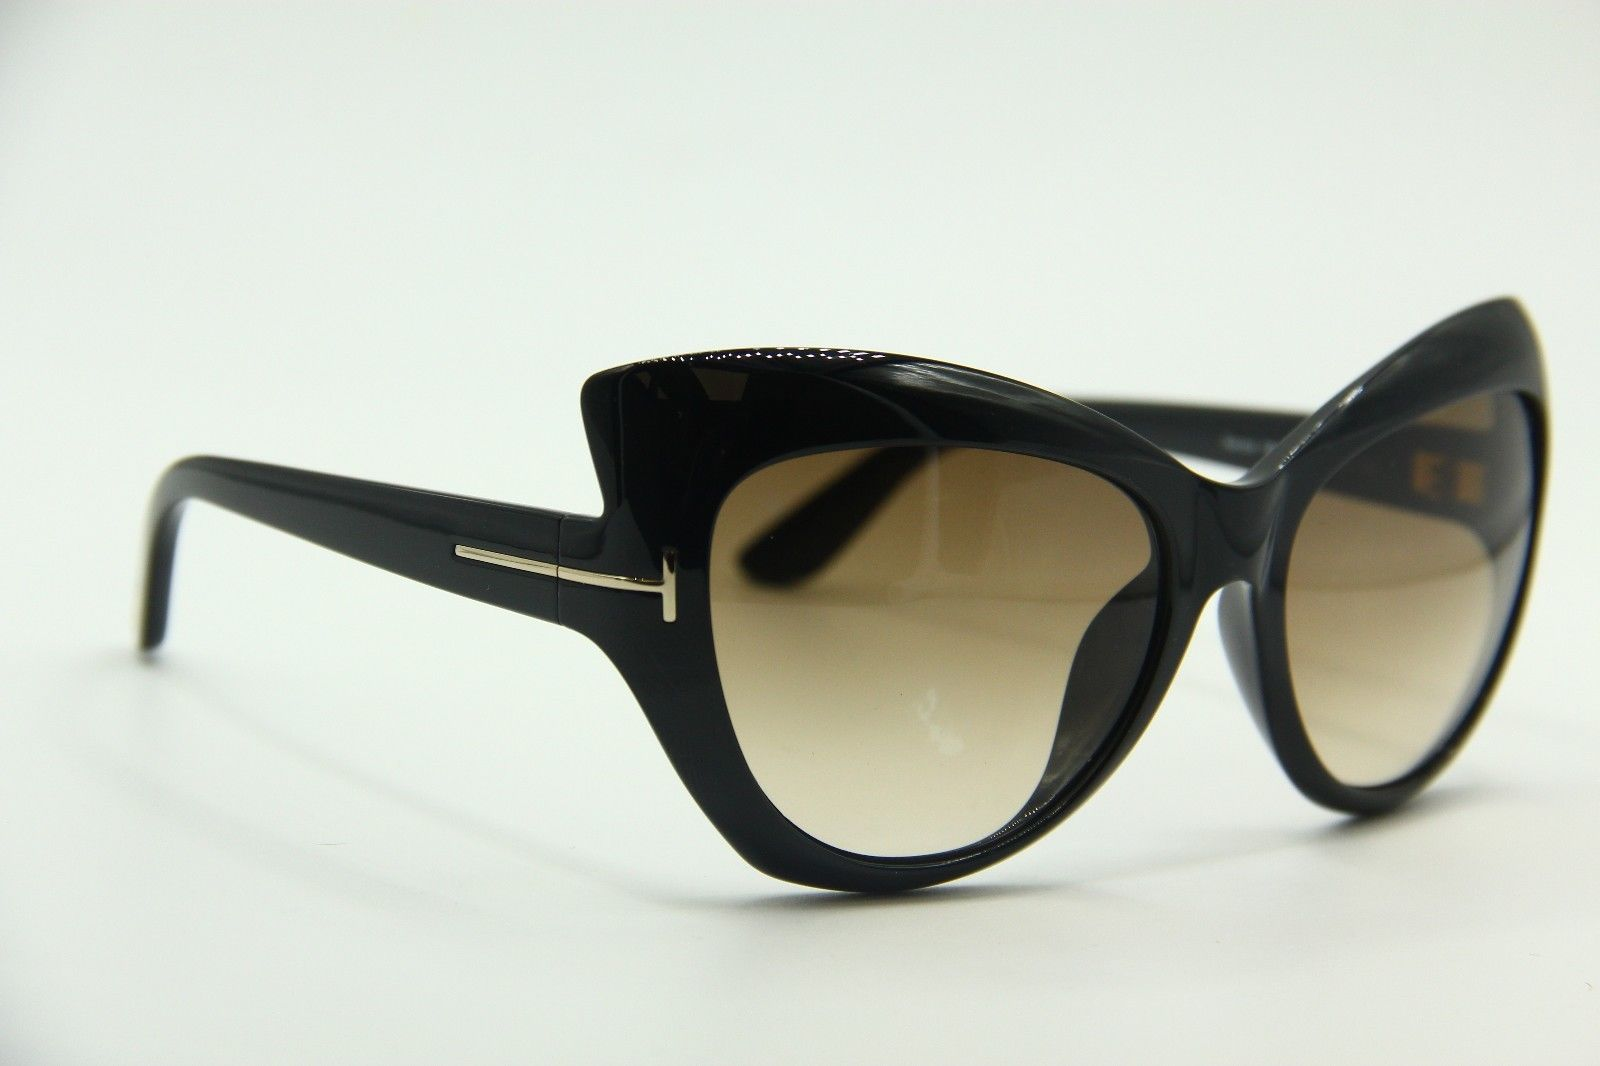 5c30772f21 57. 57. TOM FORD TF 9284 01F BARDOT BLACK GRADIENT AUTHENTIC SUNGLASSES  59-17 W CASE. TOM FORD ...